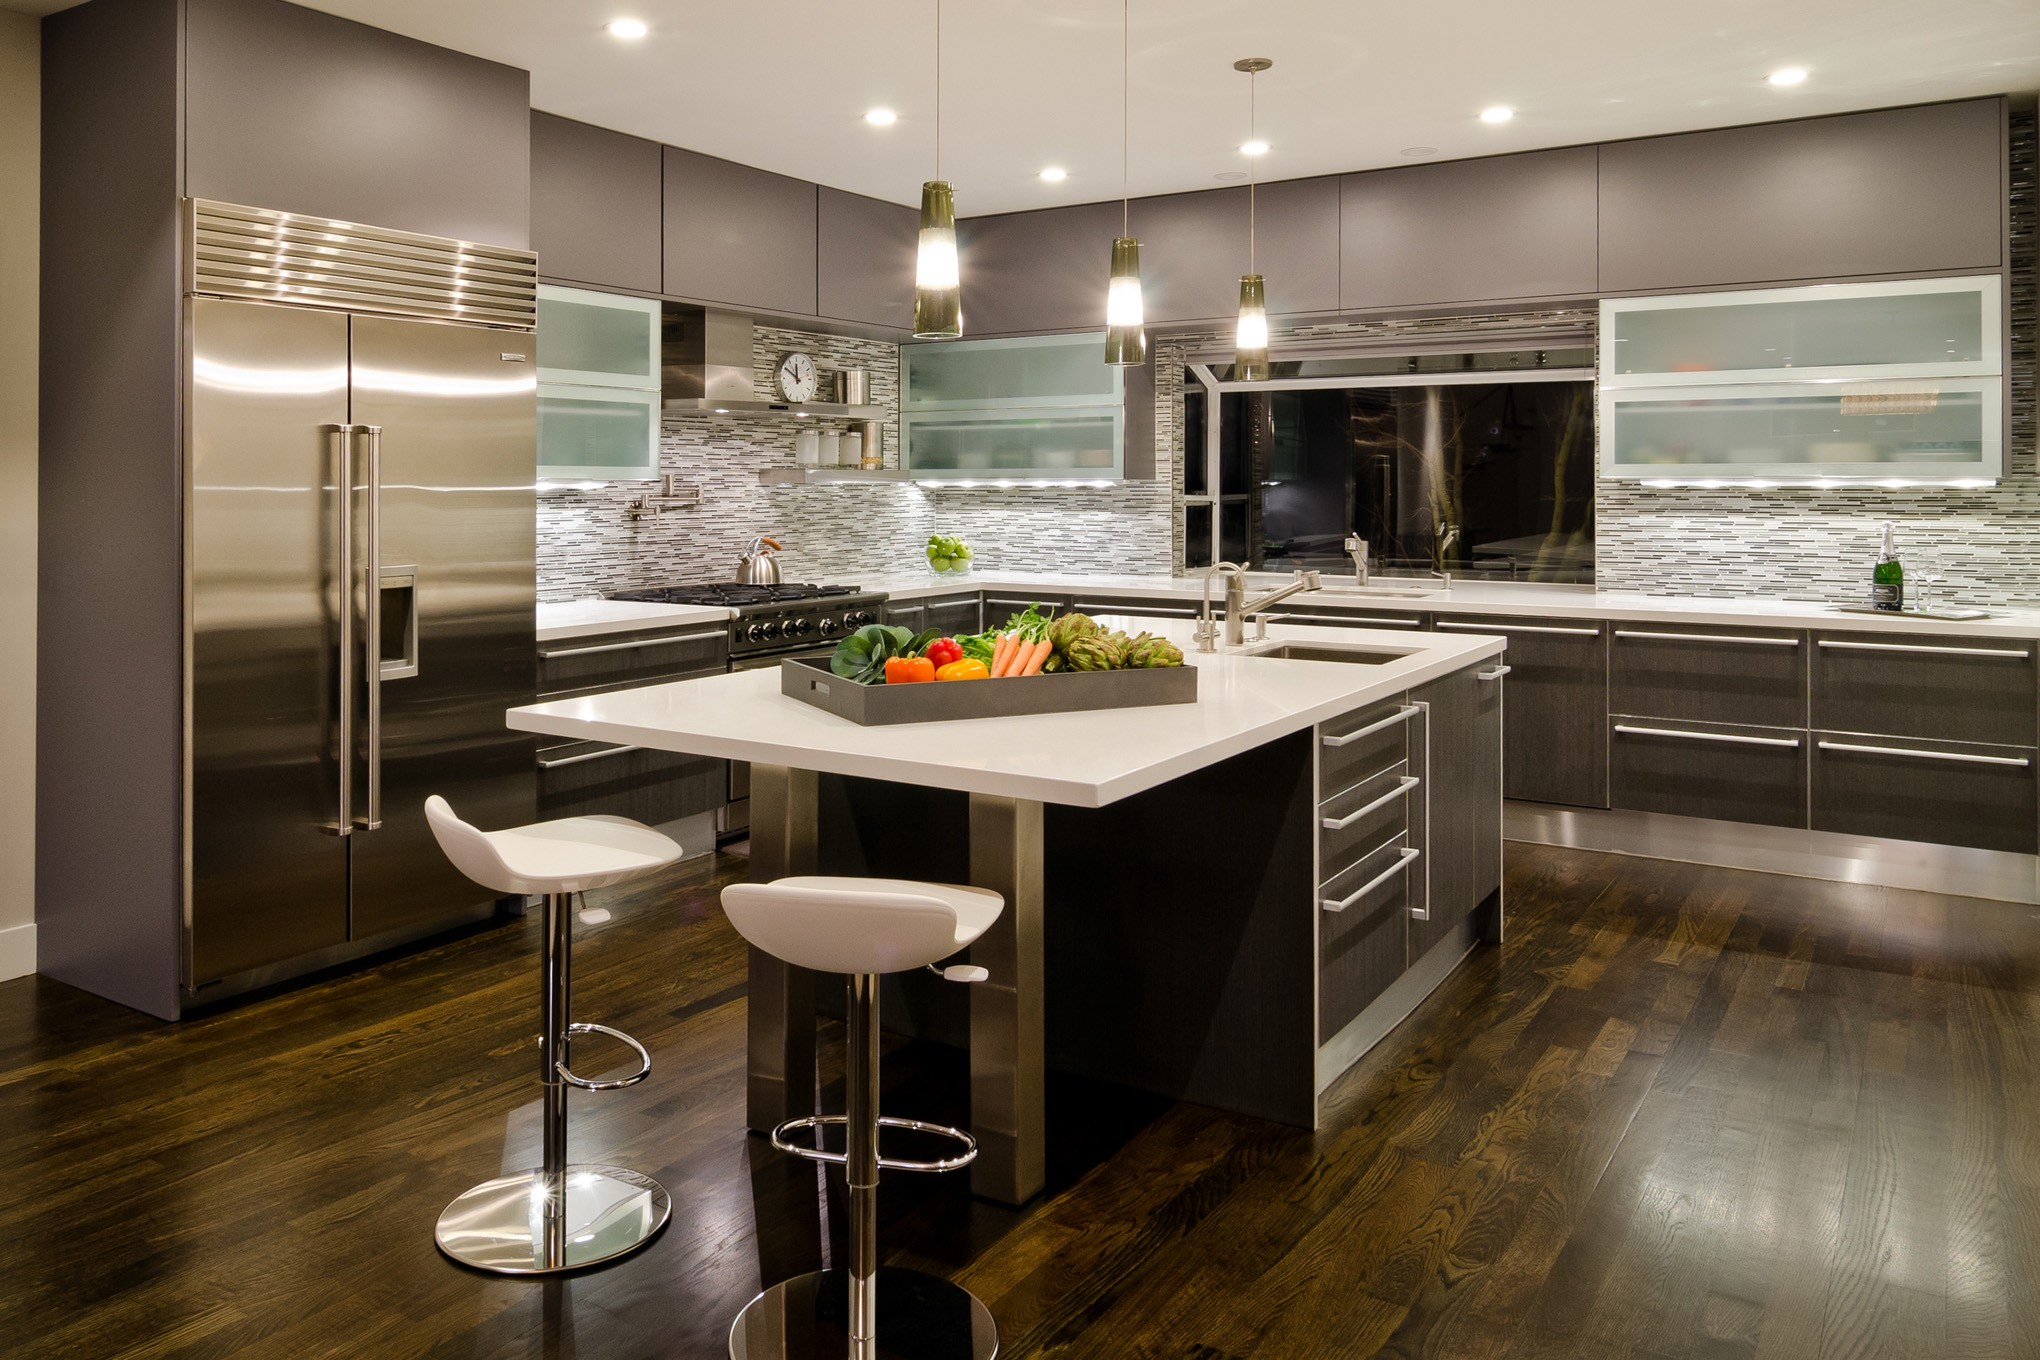 Modern Kitchen Cabinets Offer a Streamlined Look and Maximum